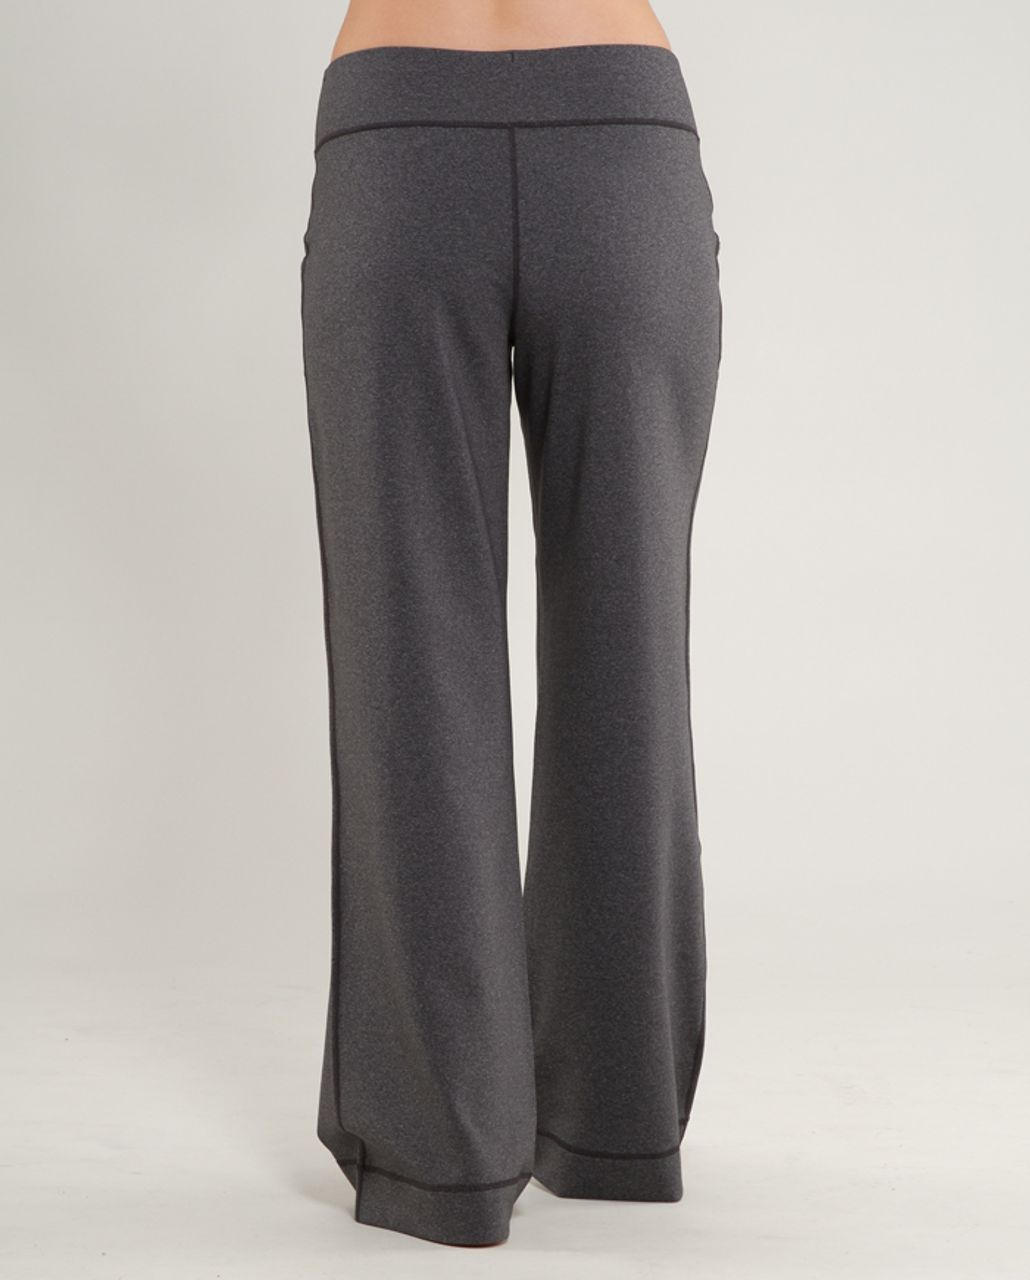 Lululemon Still Pant (Regular) - Heathered Deep Coal